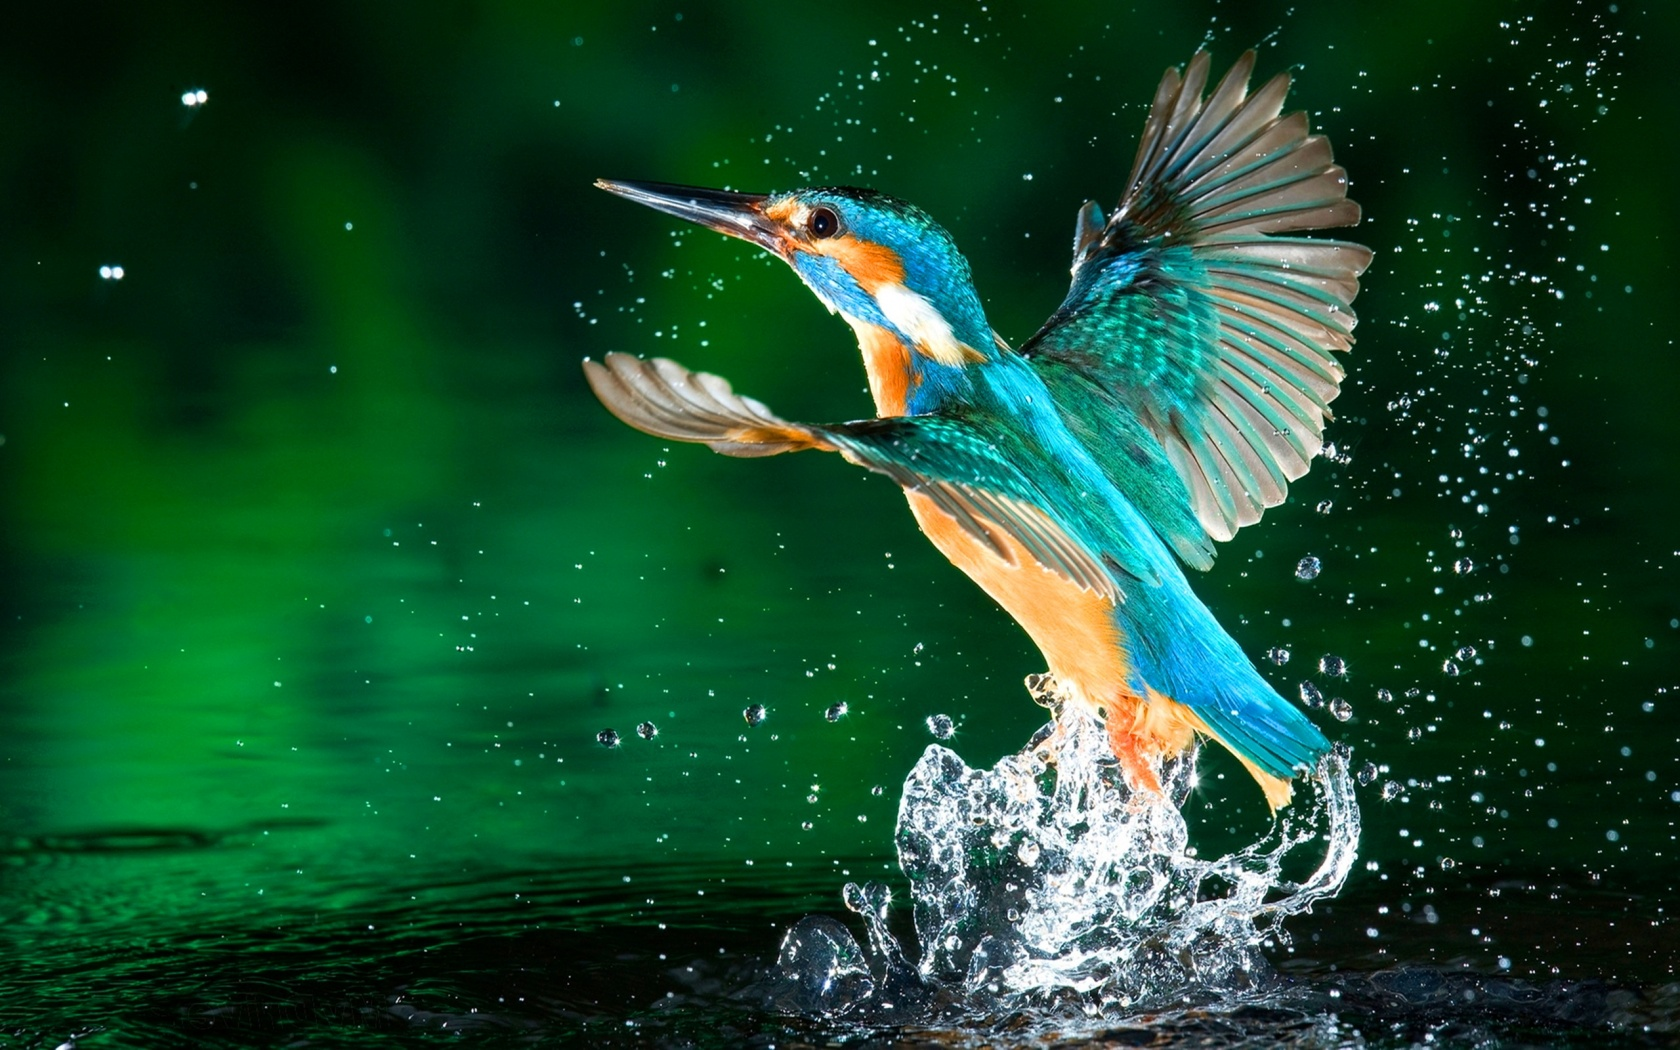 10 Latest Wallpapers Of Baby Animals Full Hd 1080p For Pc: 14 HD Kingfisher Bird Wallpapers